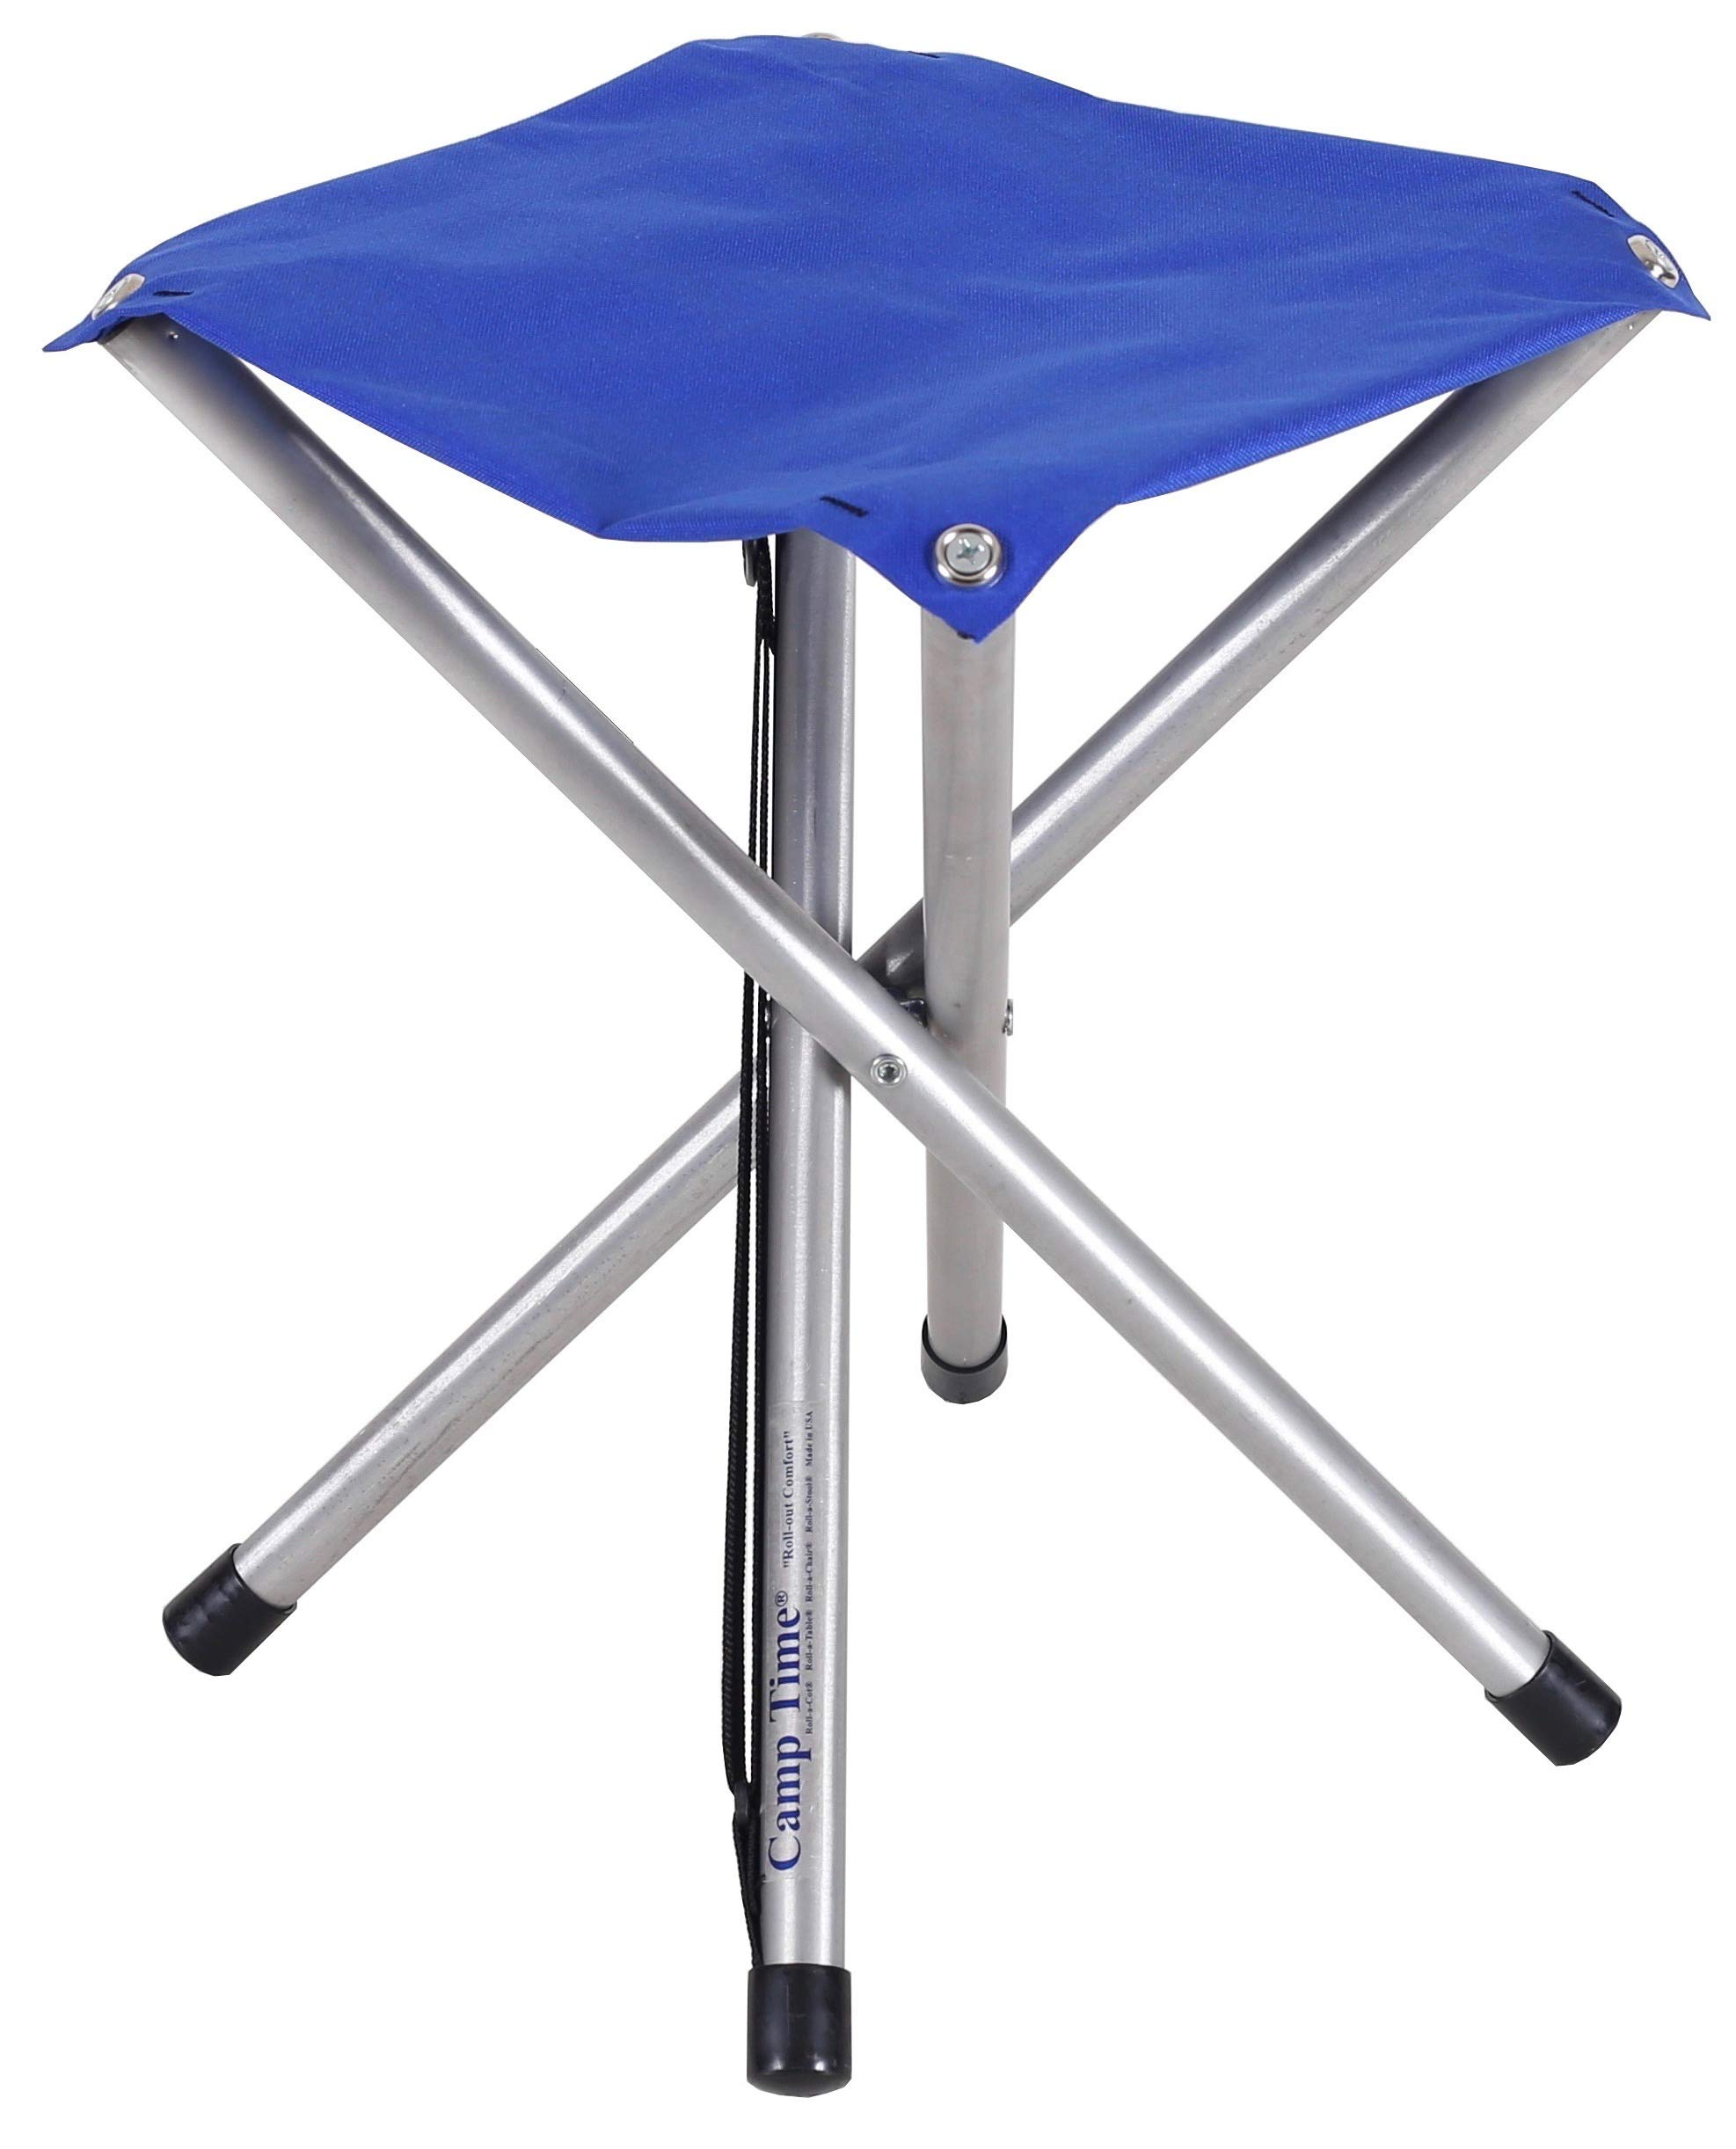 Camp Time Jumbo Stool, Chair height Sitting Comfort, 300 pound capacity, Elegant folding design, 1.6 pounds with shoulder strap, USA Made by Camp Time